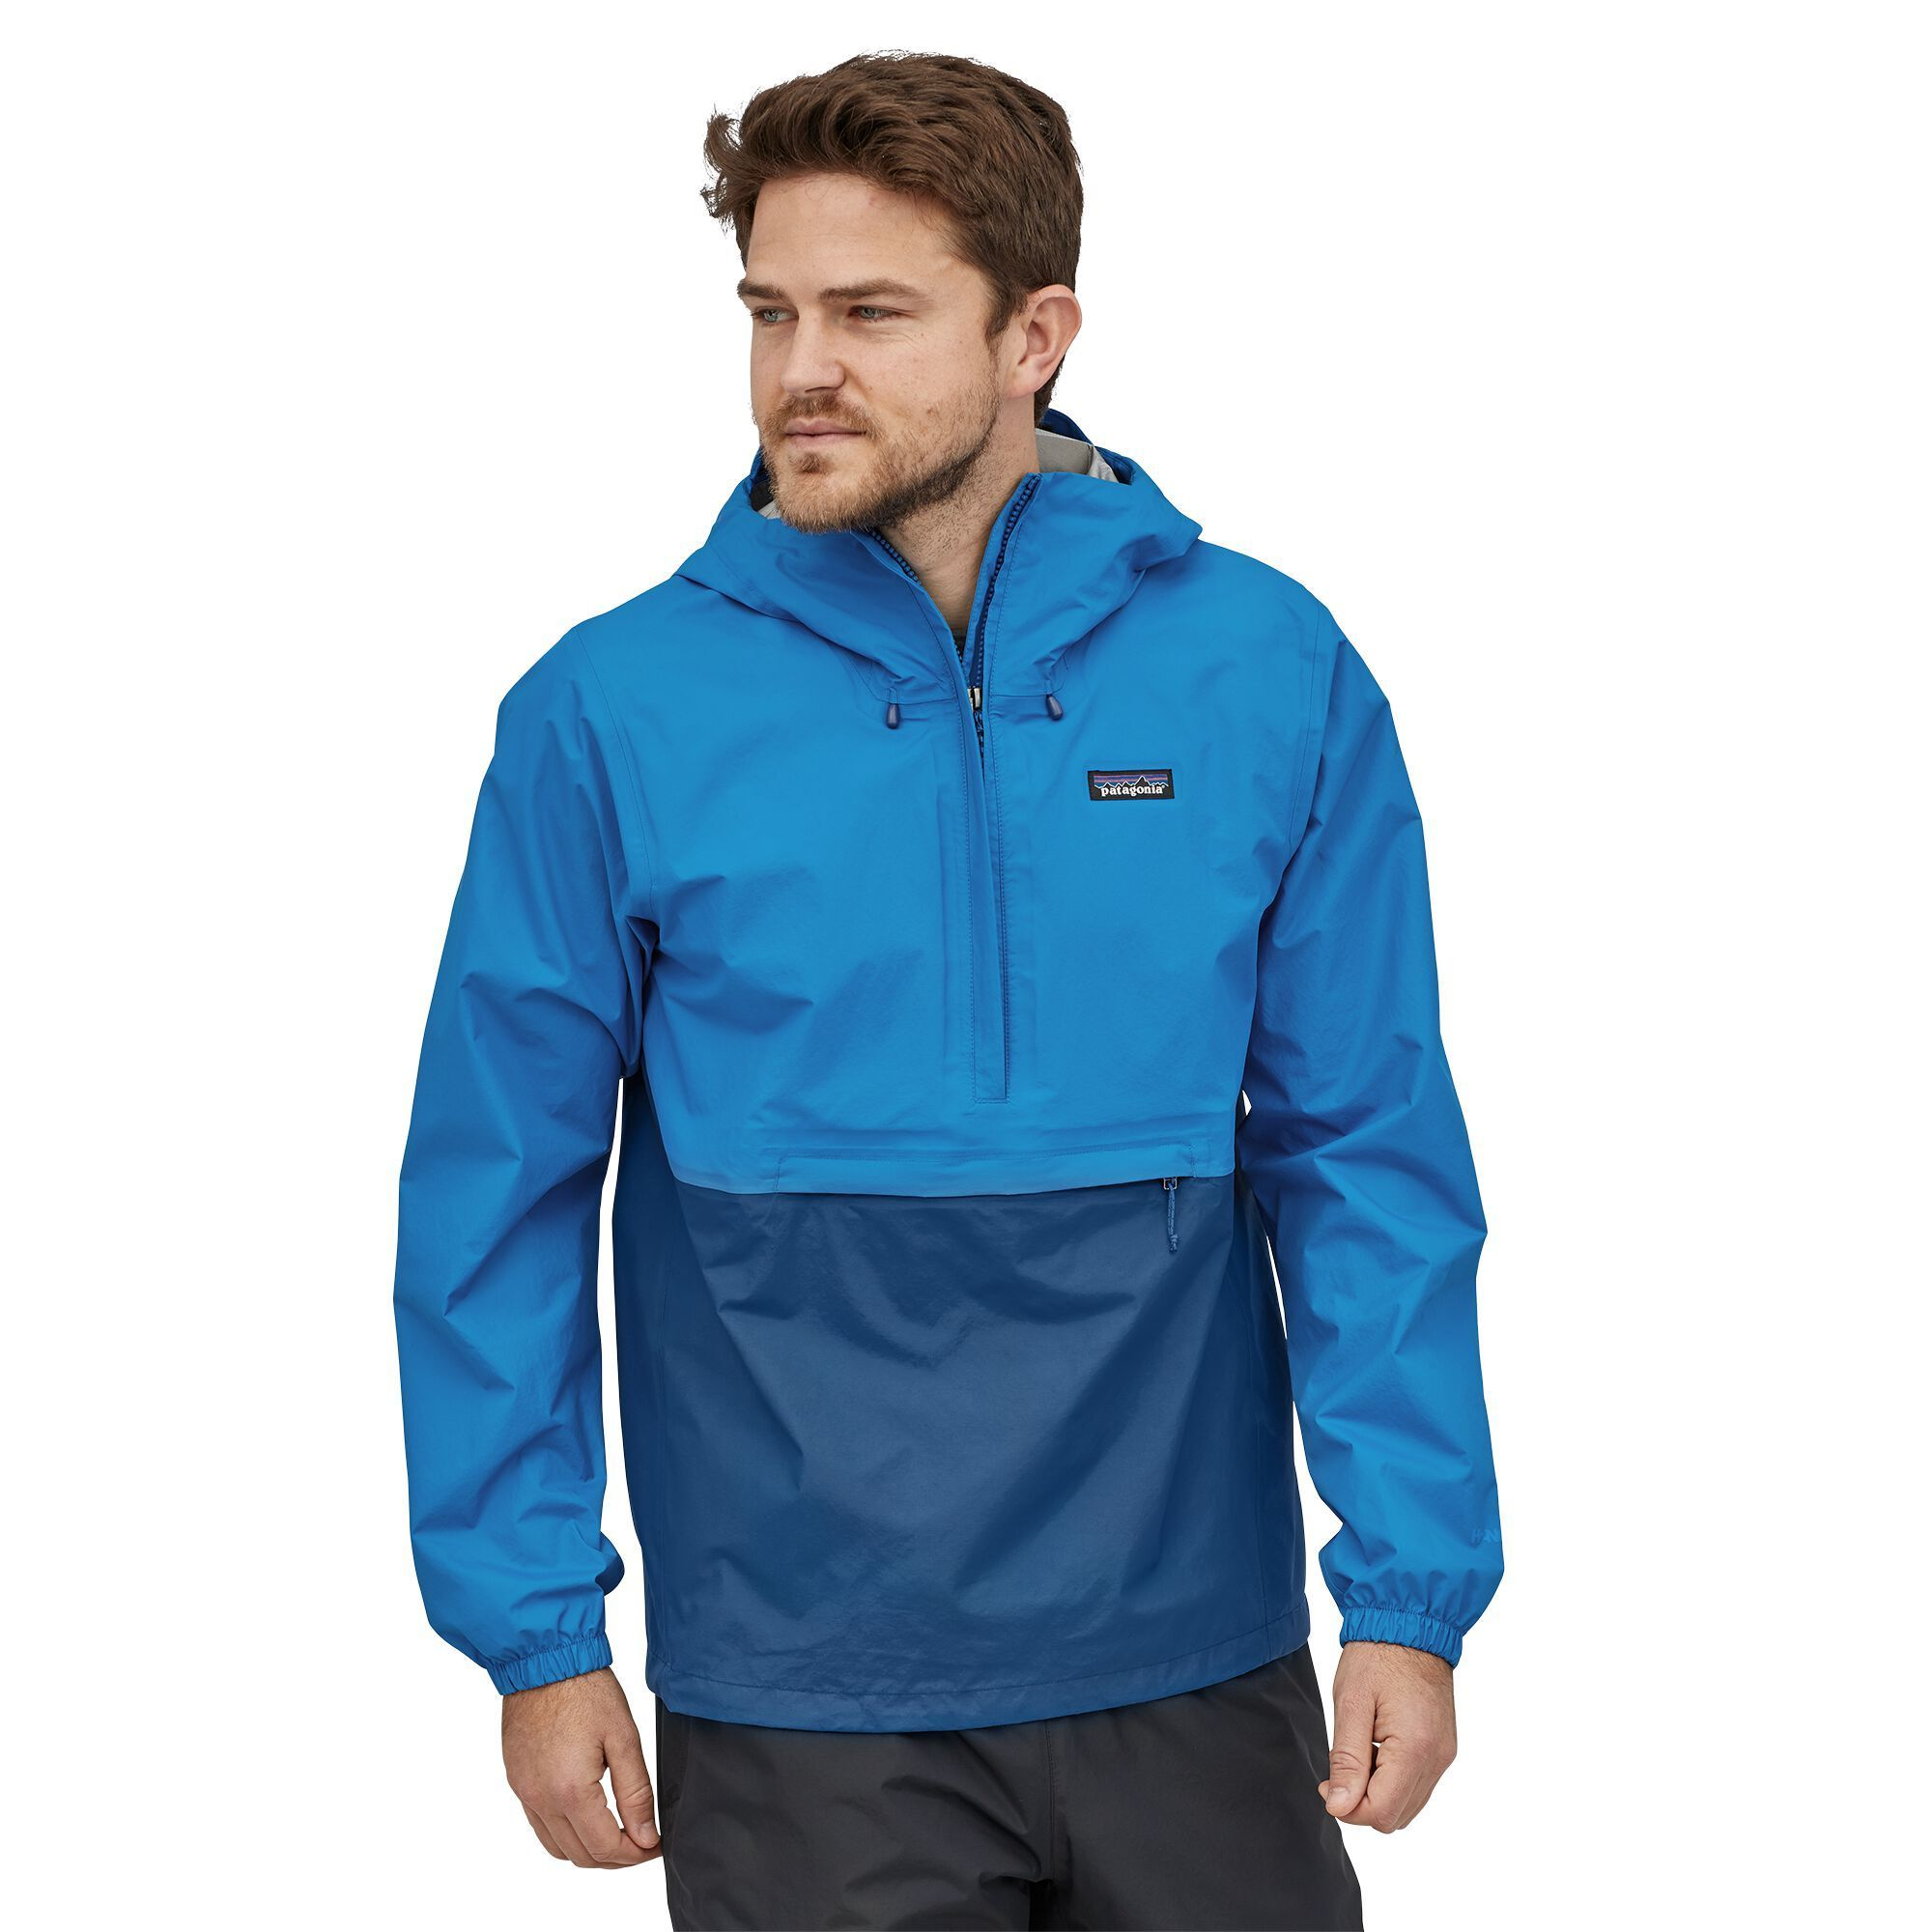 Patagonia - M's Torrentshell 3L Pullover - 100% Recycled Nylon - Weekendbee - sustainable sportswear